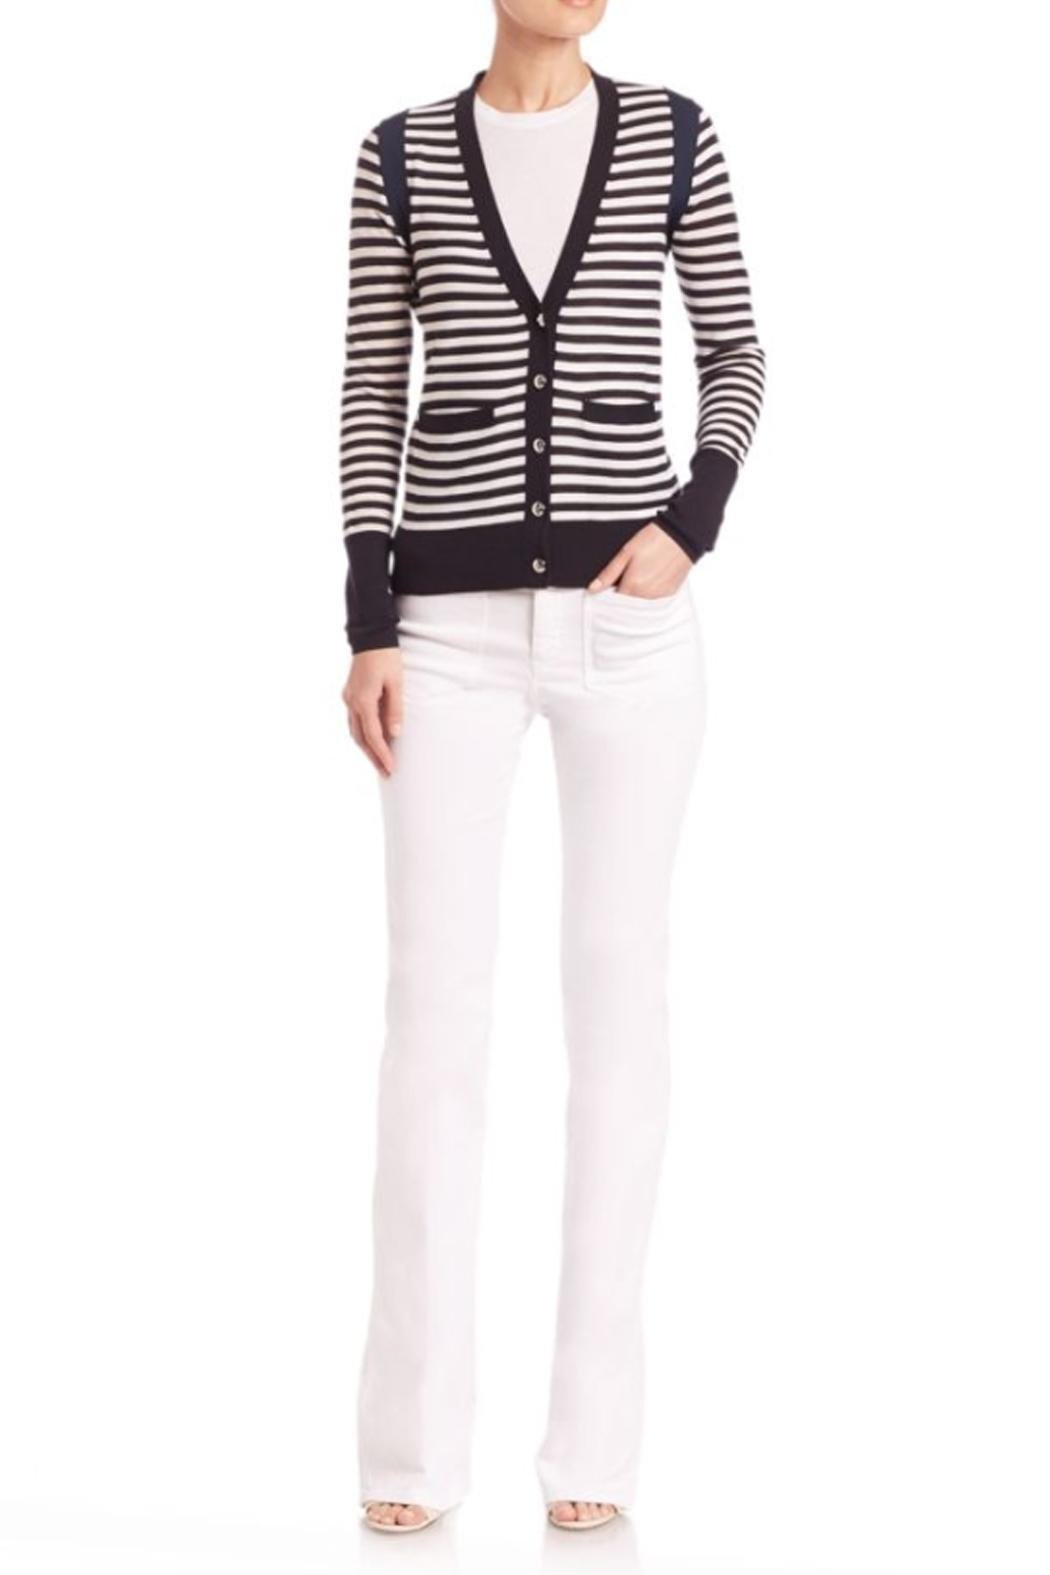 Sonia by Sonia Rykiel Striped Navy Cardigan - Main Image